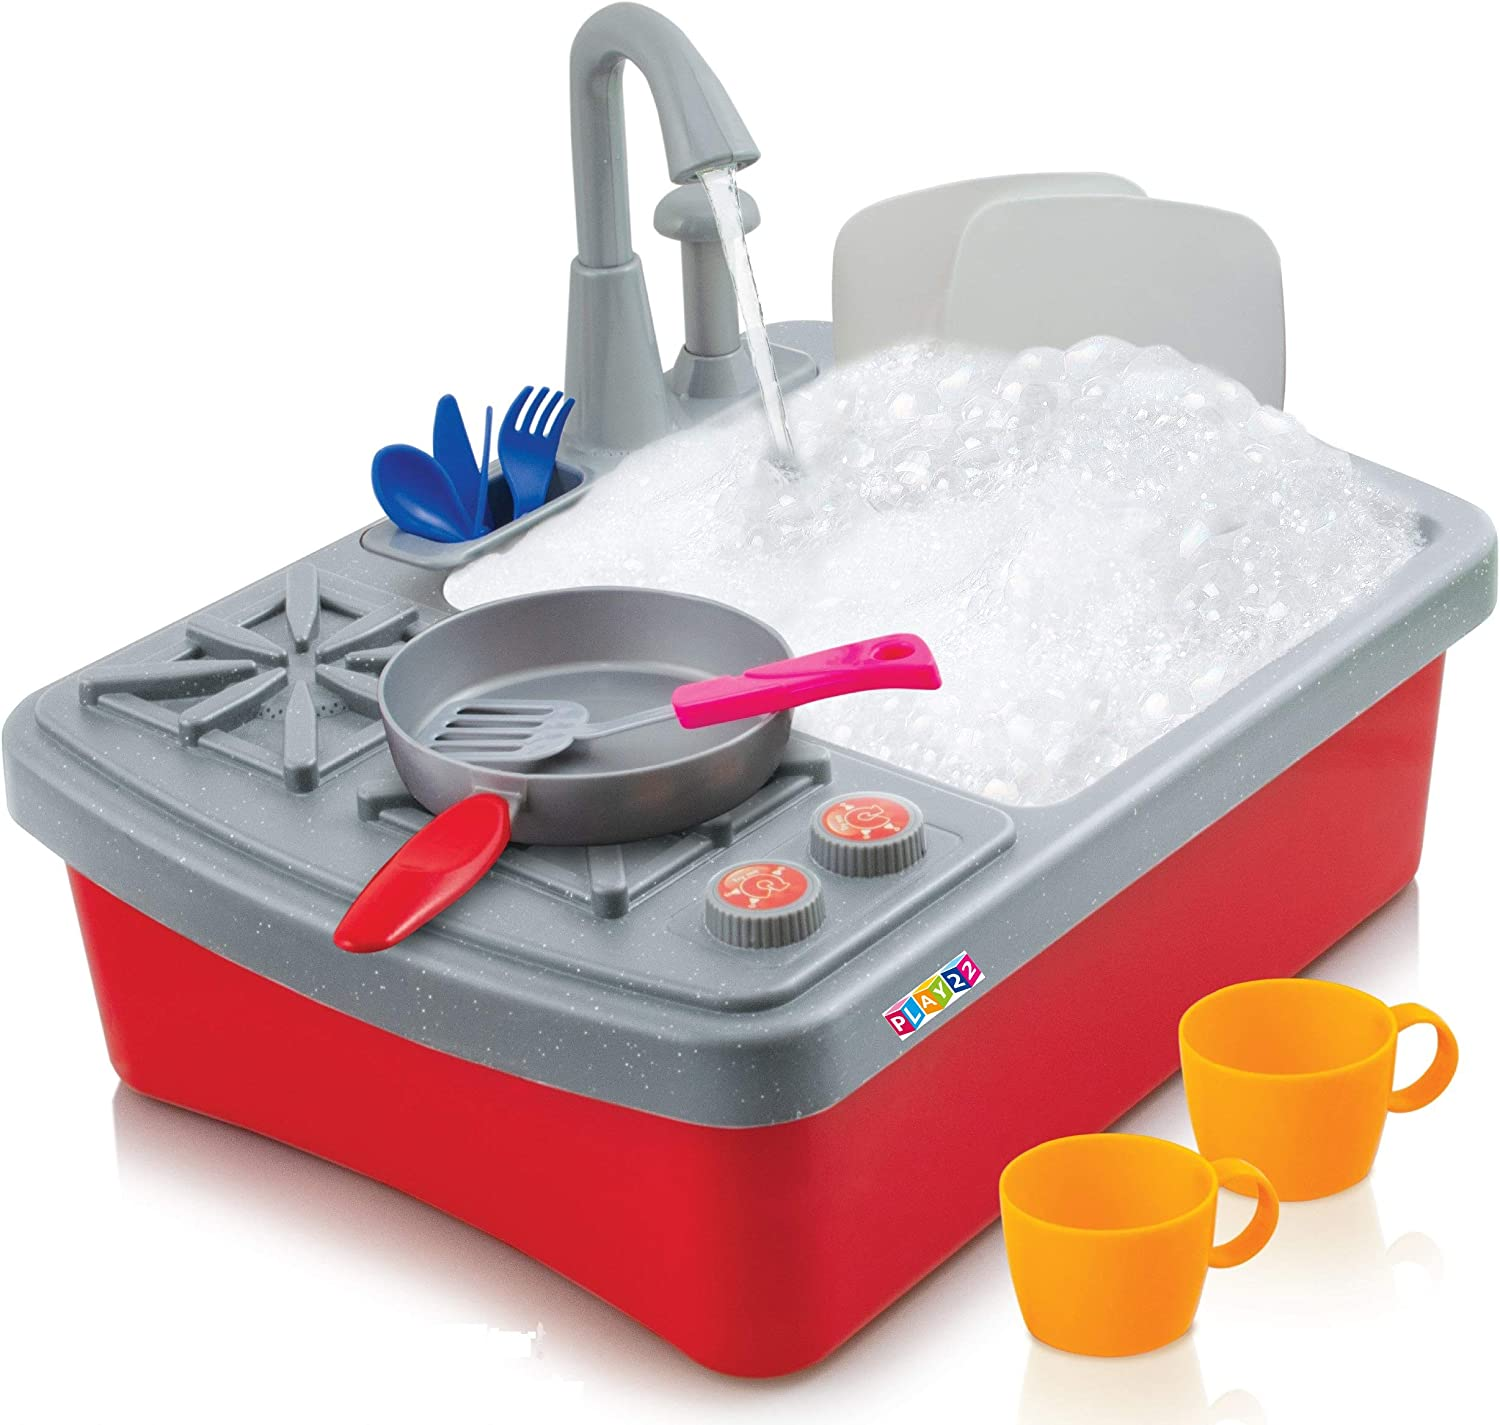 Play22 Kitchen Sink Toy 17 Set - Play Sink Play House Pretend Toy Kitchen Sink with Running Water - Kids Toy Sink with Real Faucet & Drain, Dishes, Utensils & Stove - Kitchen Toys for Toddlers & Kids